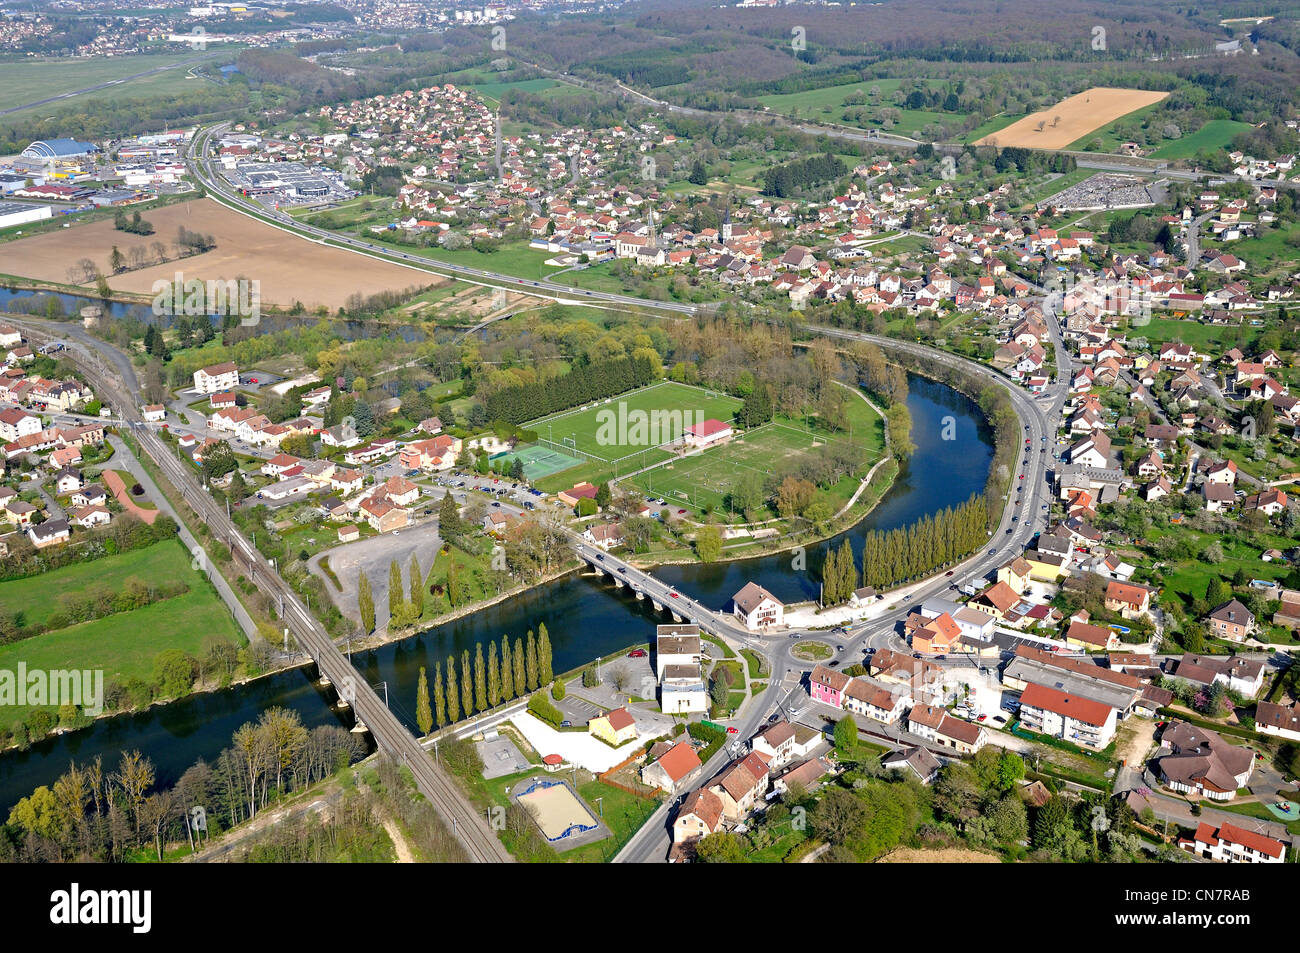 France, Doubs, Doubs valley, Voujeaucourt (aerial view) - Stock Image